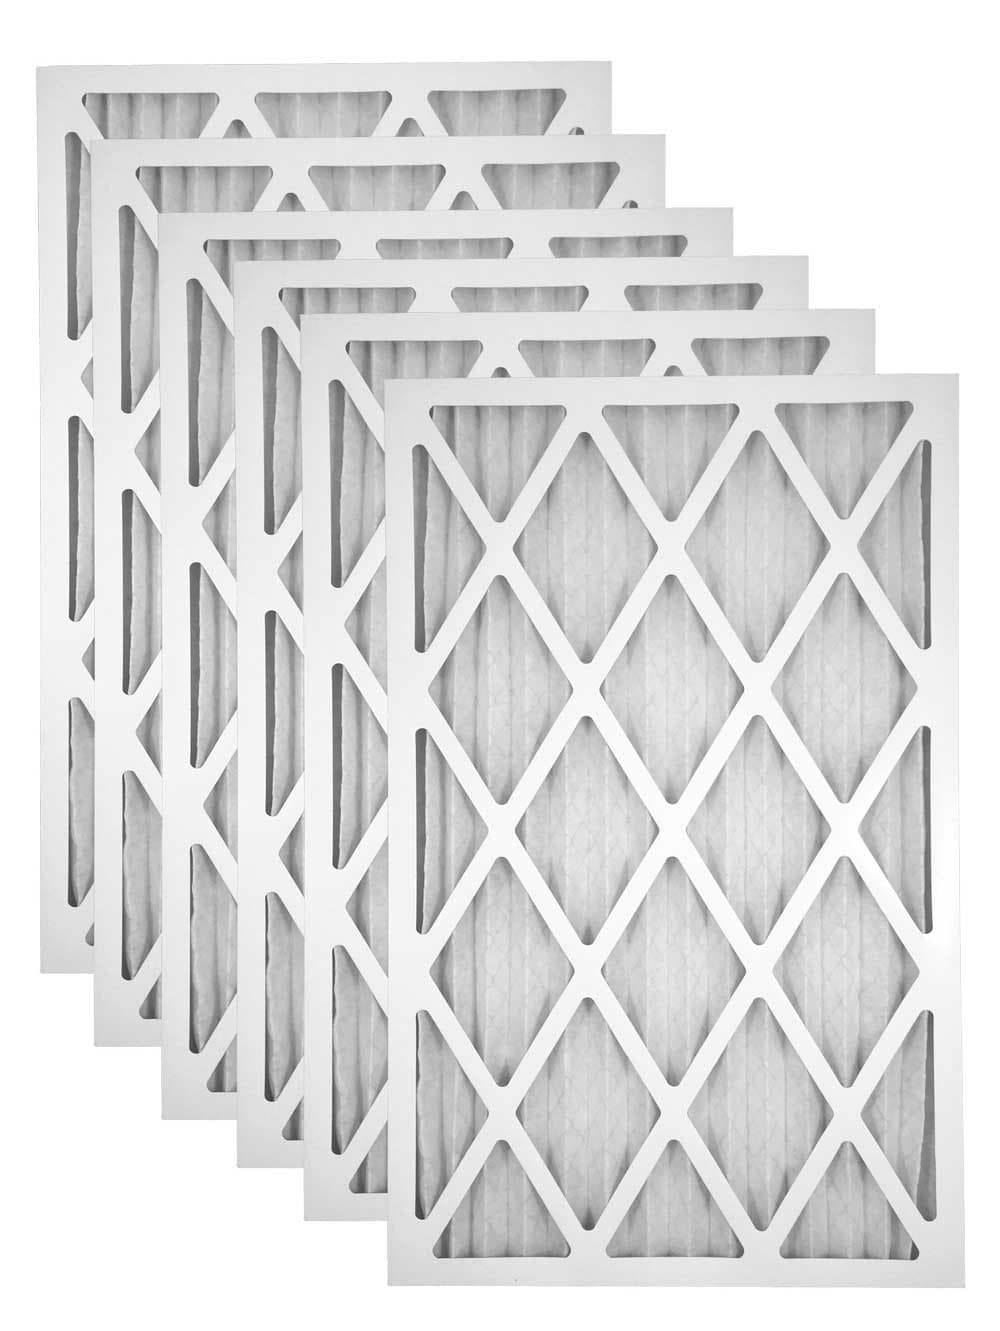 12x12x2 Merv 8 AC Furnace Filter - Case of 6